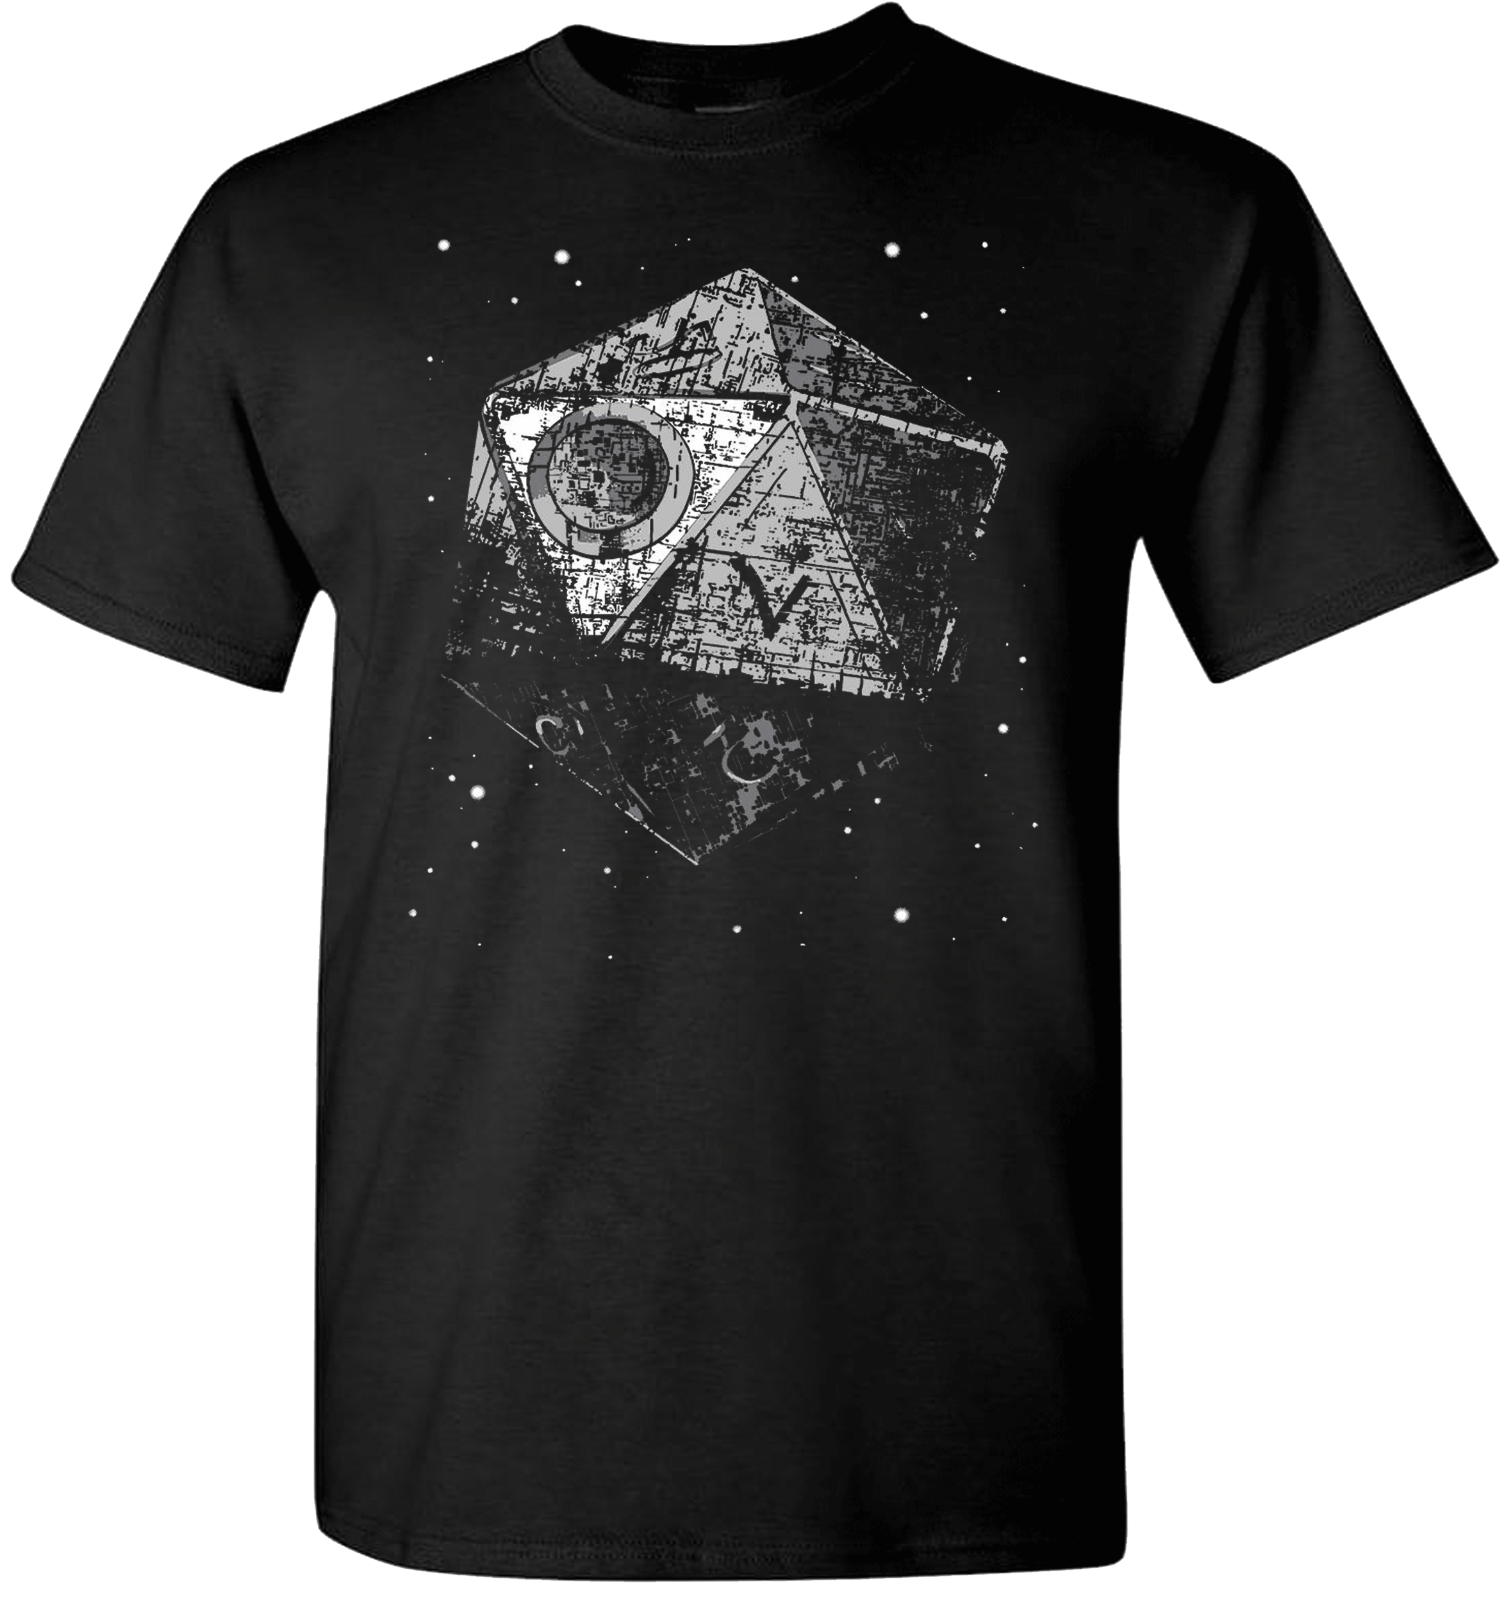 Dungeons and Dragons T Shirt Rare Black Metal Game Death Star Starwars Top Quality T-Shirts Men O Neck Top Tee Plus Size image